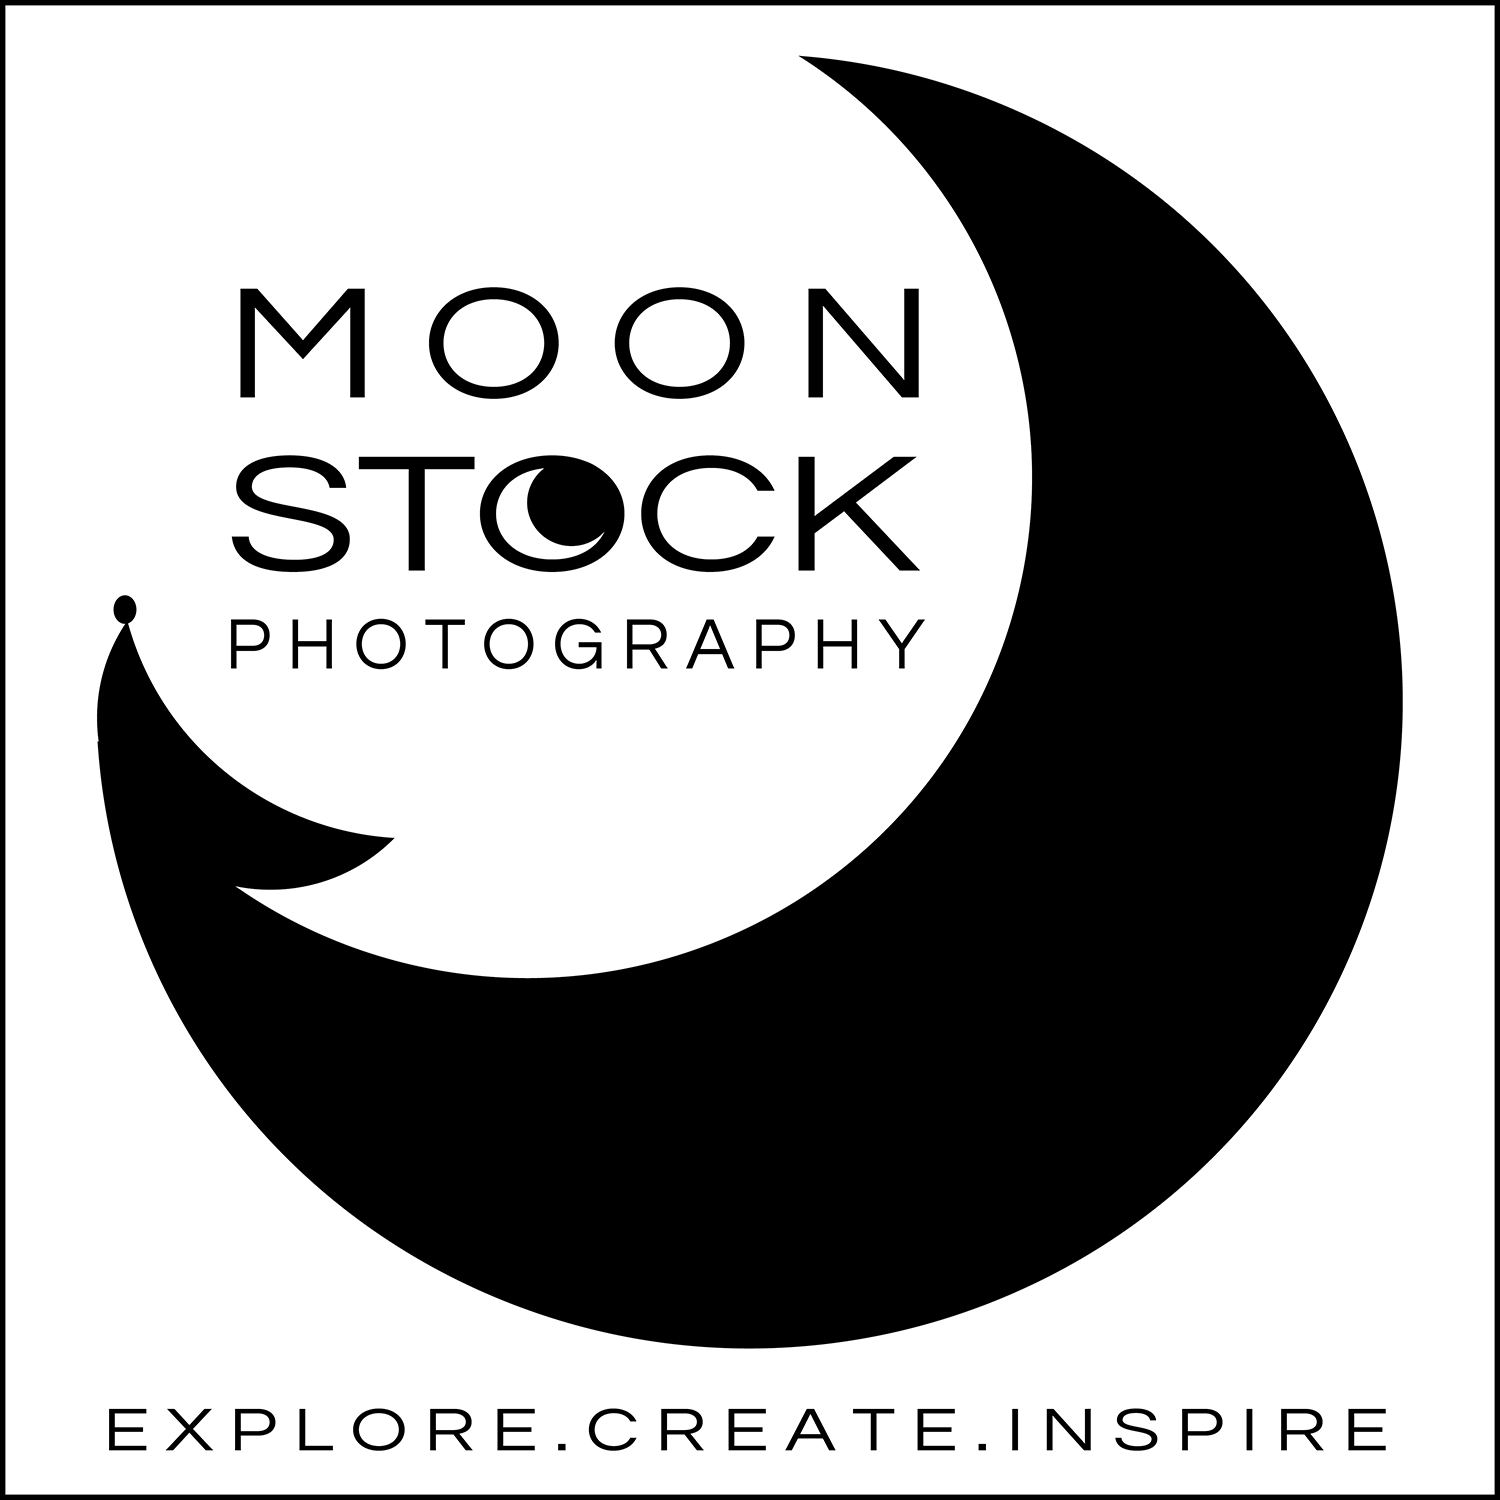 MOONSTOCK Photography